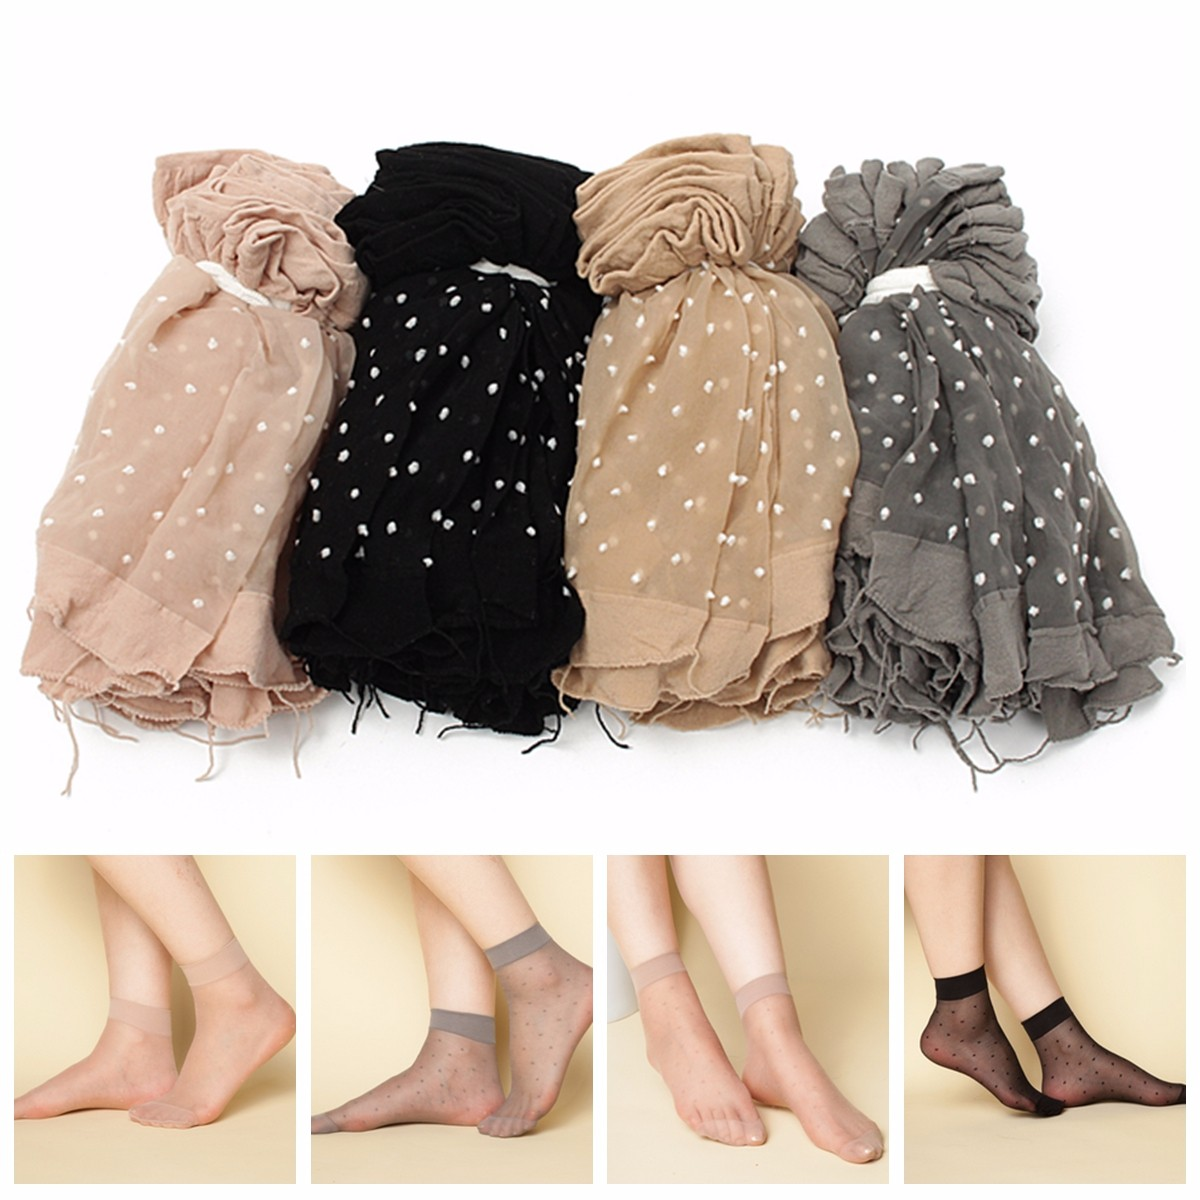 10Pairs Women Girls Transparent Polka Dot Socks Lace Ultra Thin Fiber Sheer Ankle Hosiery